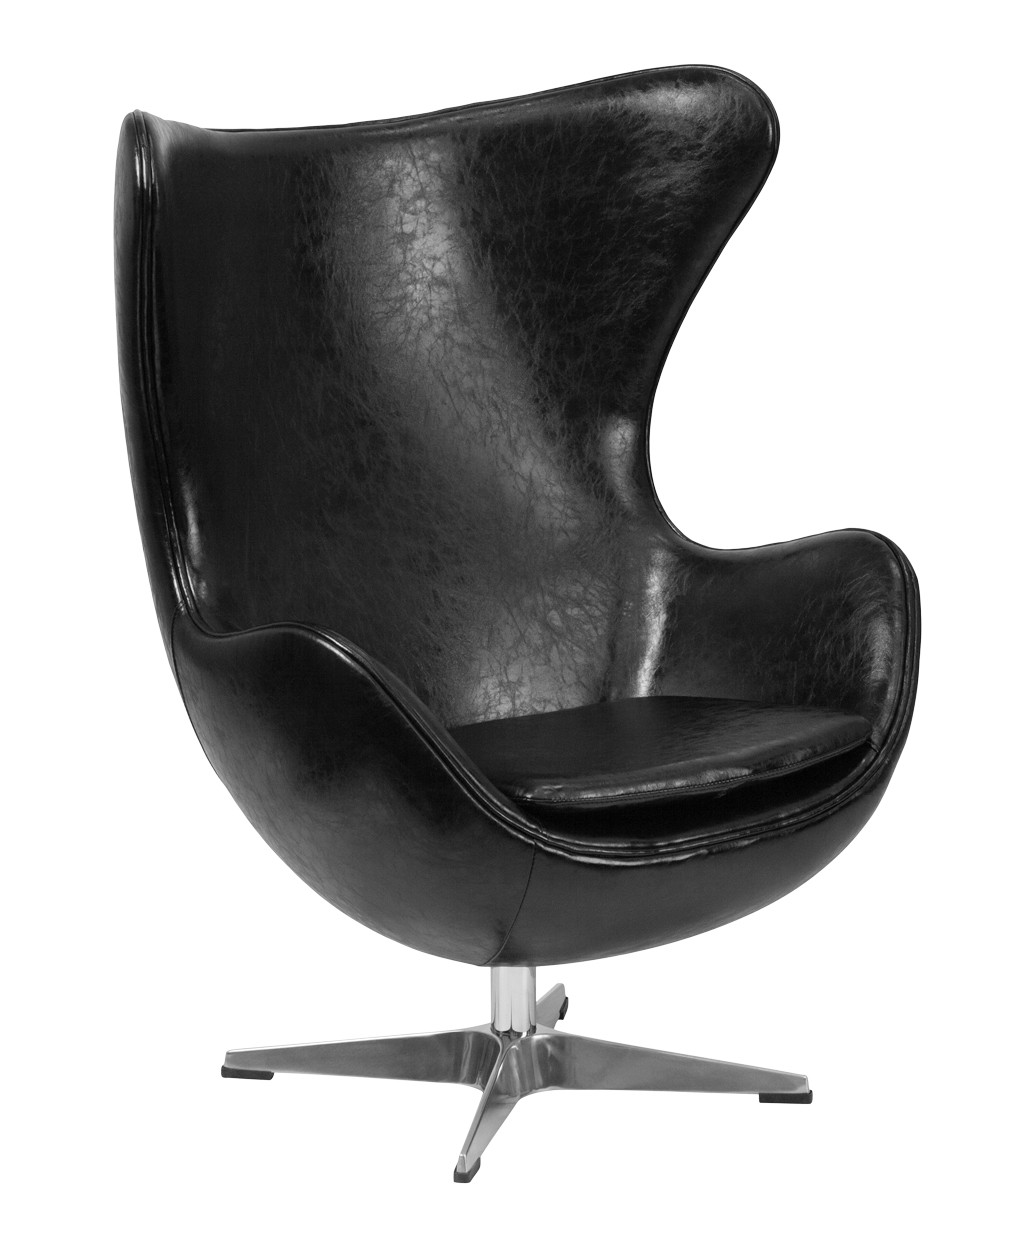 Black Leather Egg Chair With Tilt Lock Mechanism